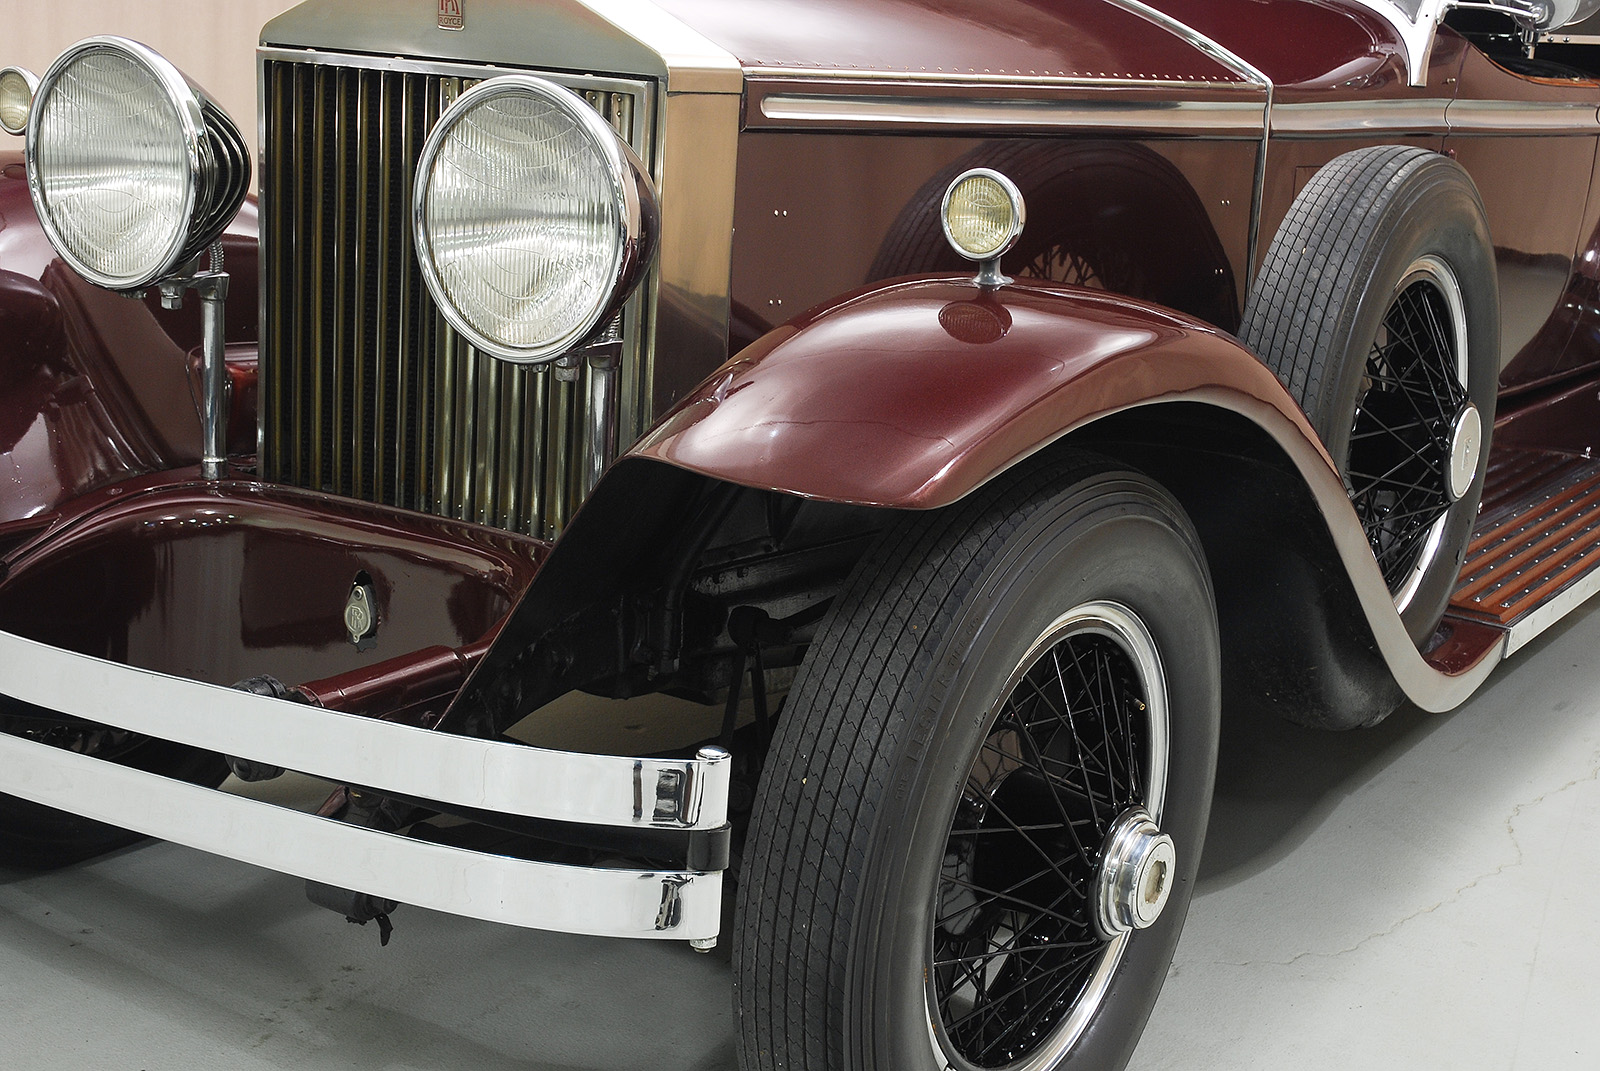 1929 Rolls Royce Phantom I Ascot Touring Hyman Ltd